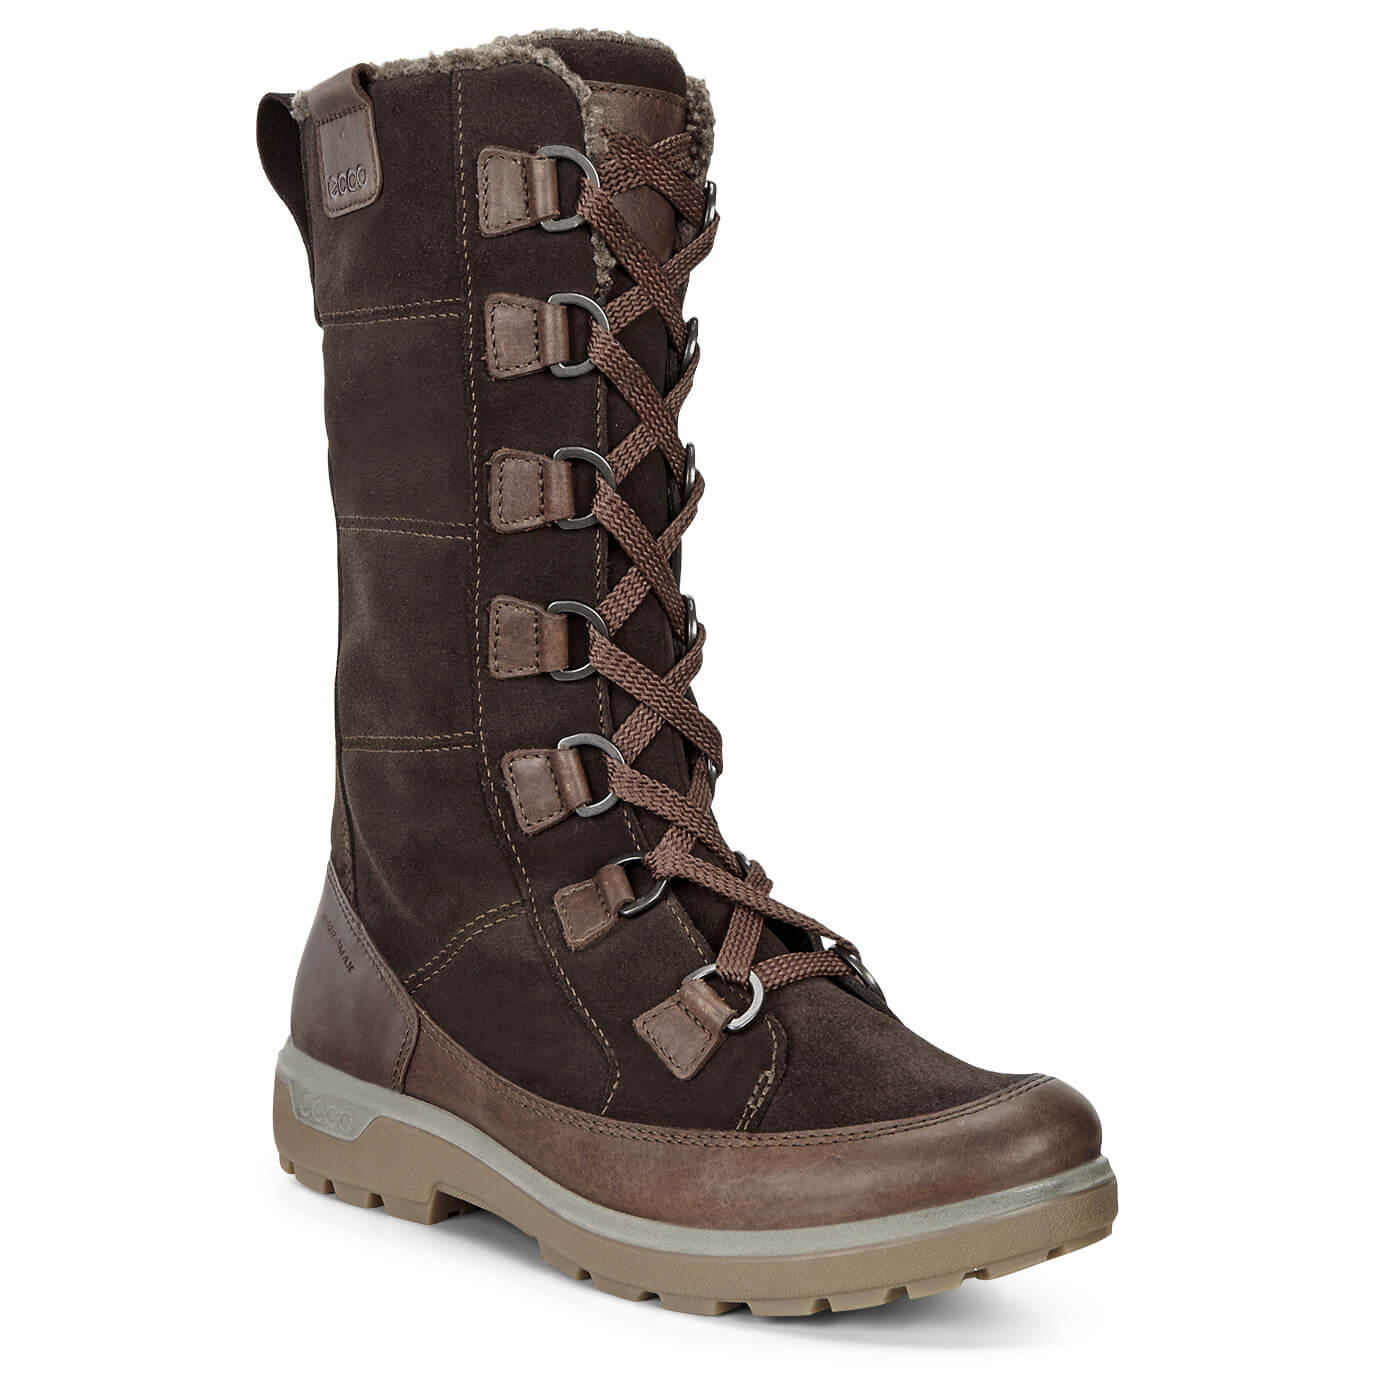 Cool 28 New Ecco Boots Womens | Sobatapk.com